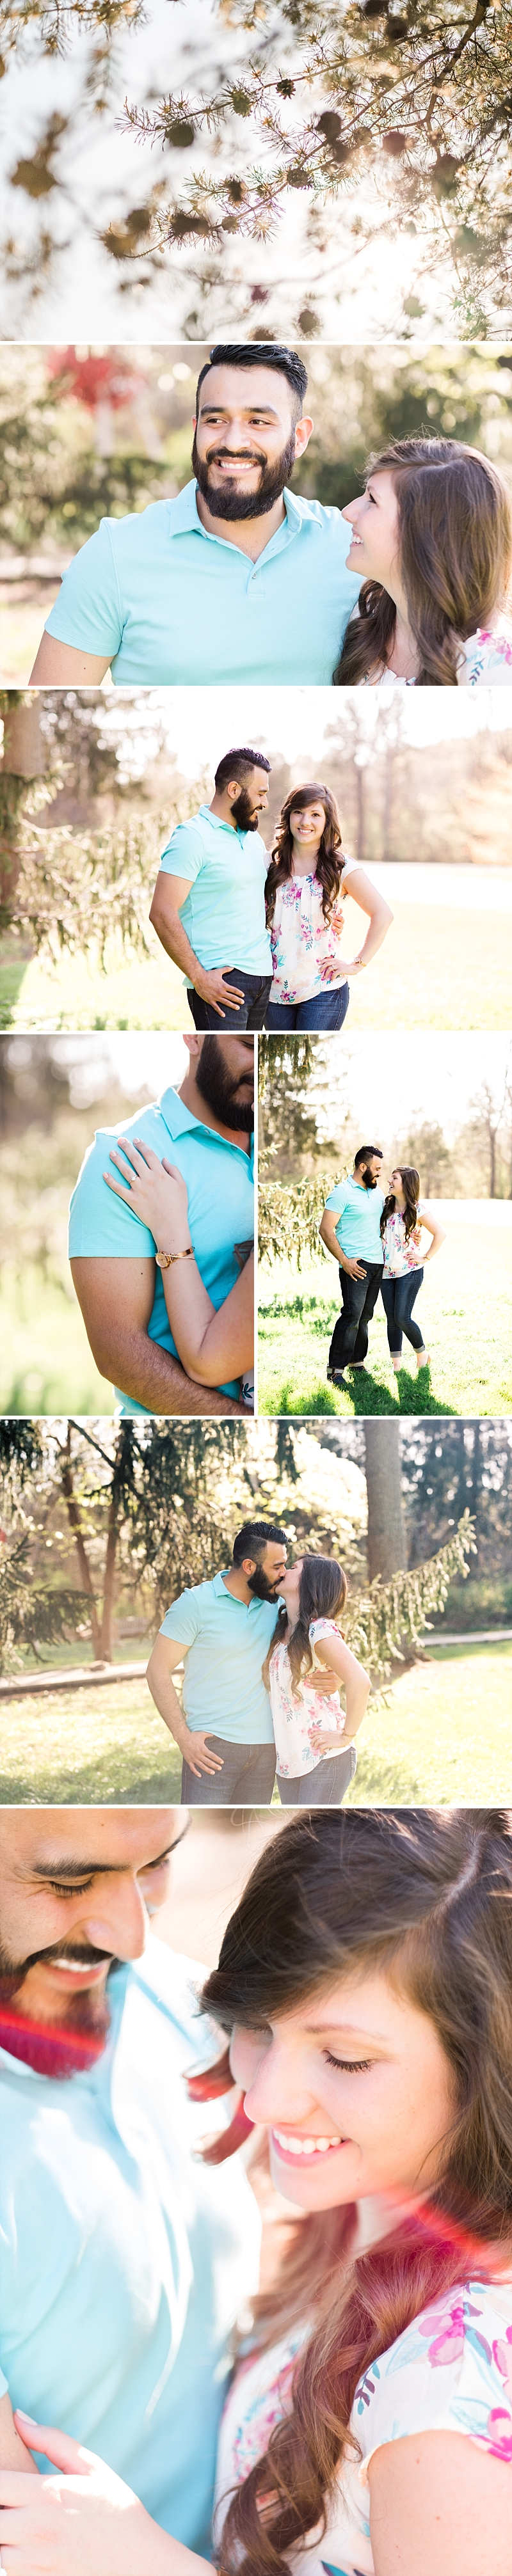 bernheim-engagment-session-Jeff-Michele